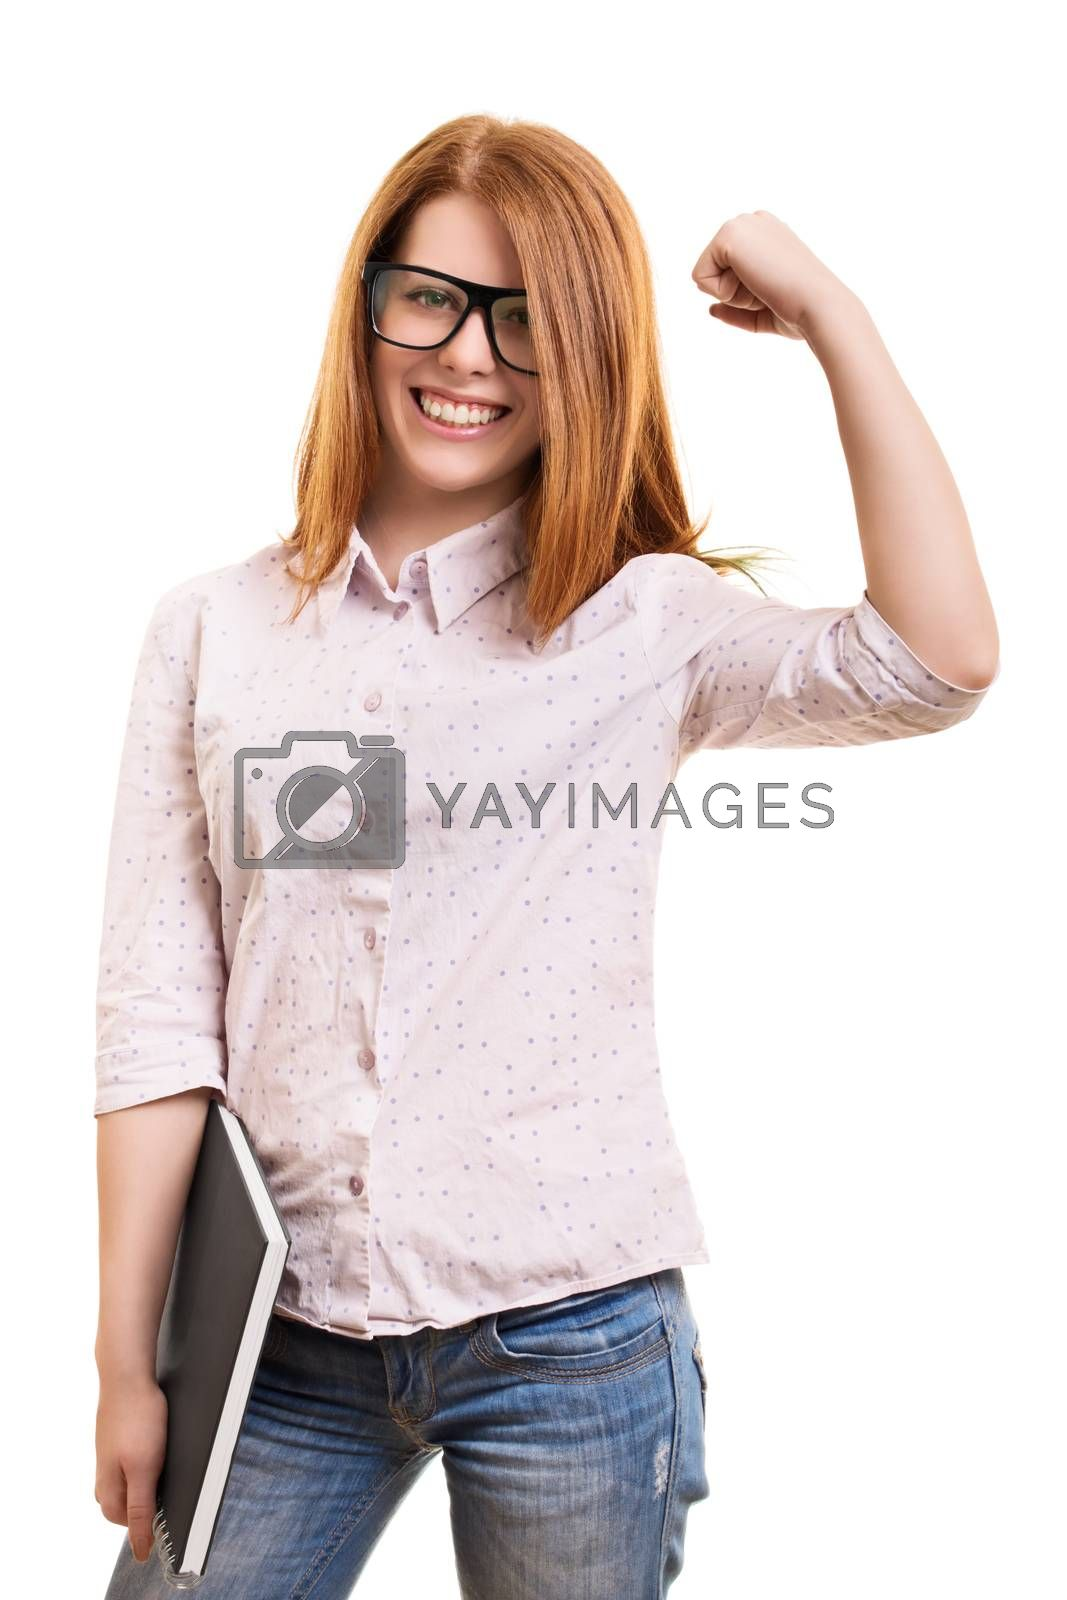 A portrait of a beautiful smiling girl with glasses, holding a book and cheering because of passed exams, isolated on a white background.